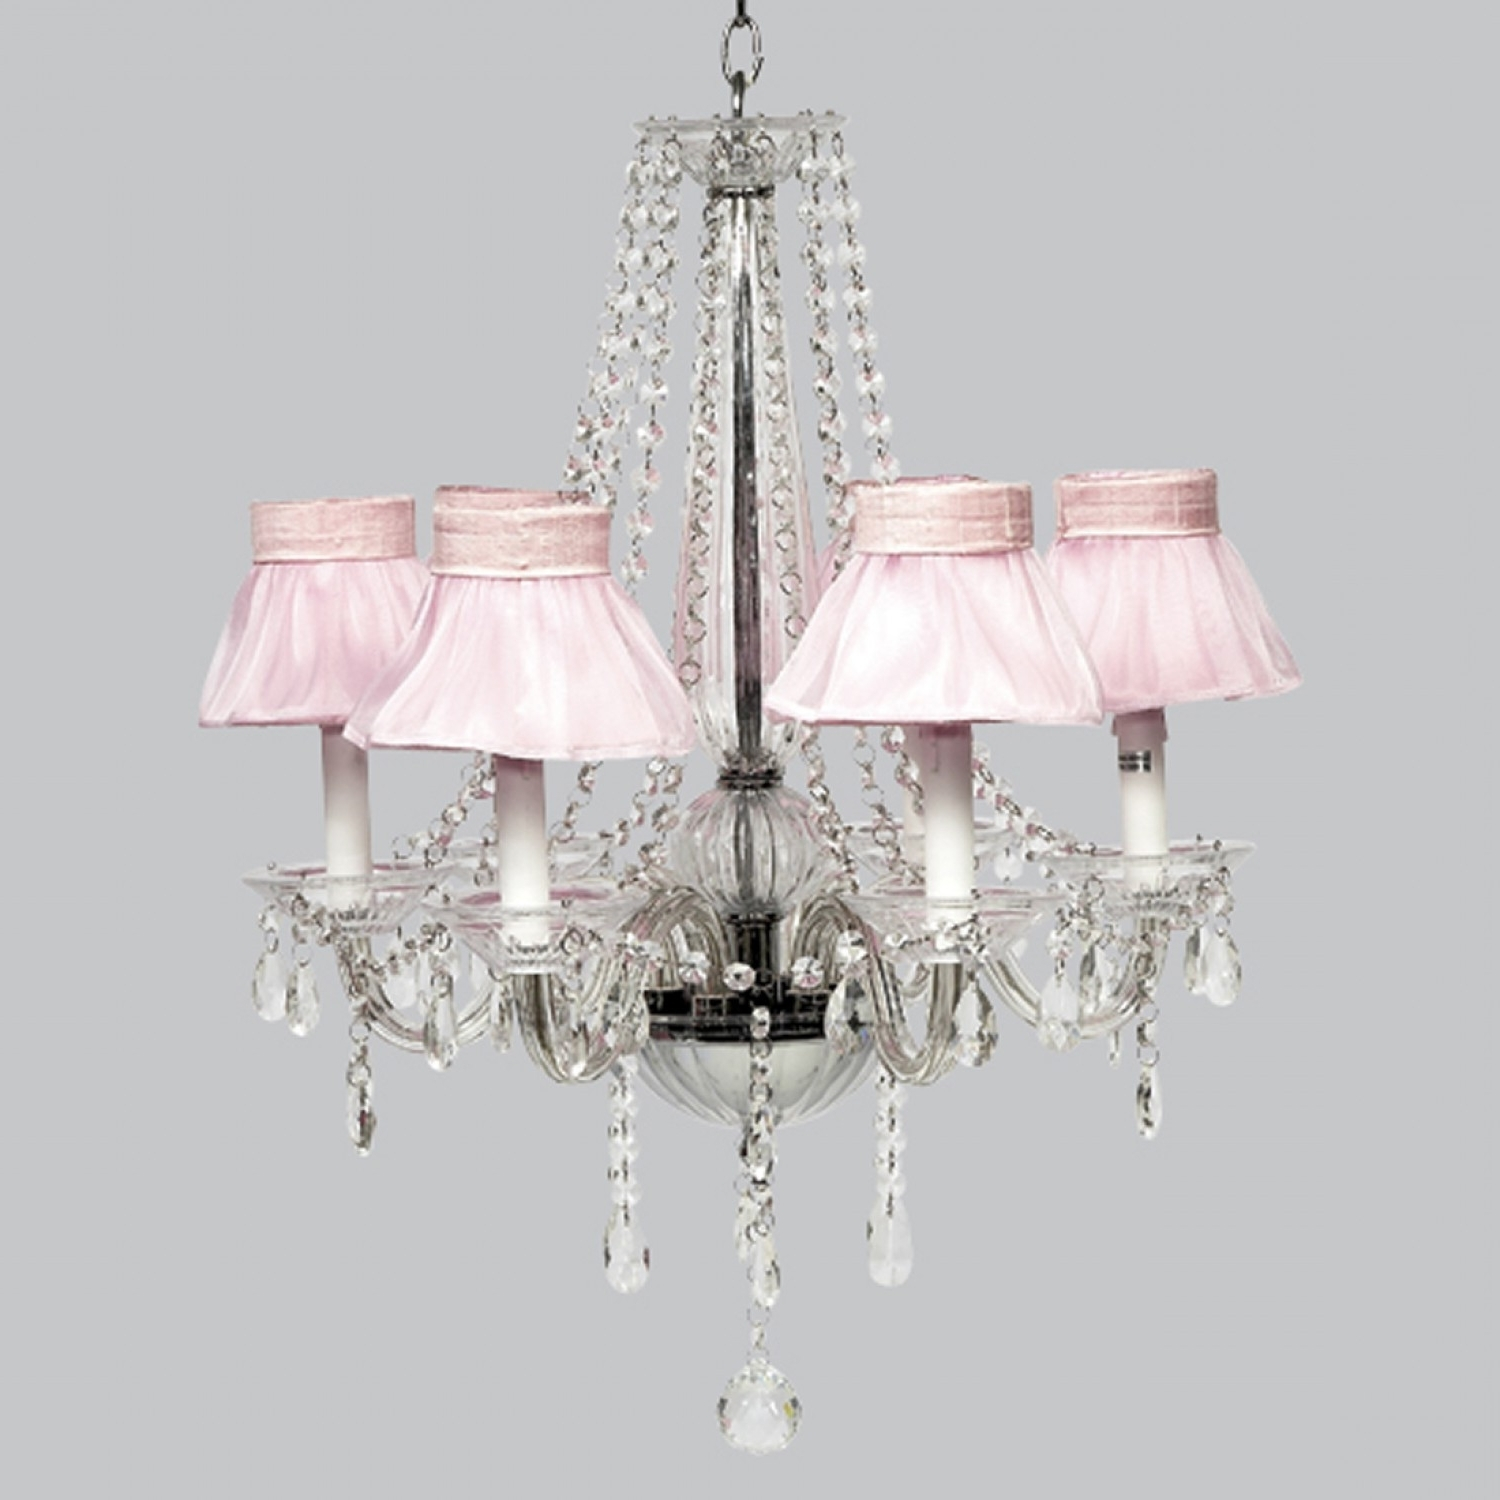 Most Current Chandeliers : Chandelier Lamp Fresh Pablo Bel Occhio 3 Pendant Inside Lampshade Chandeliers (View 13 of 20)